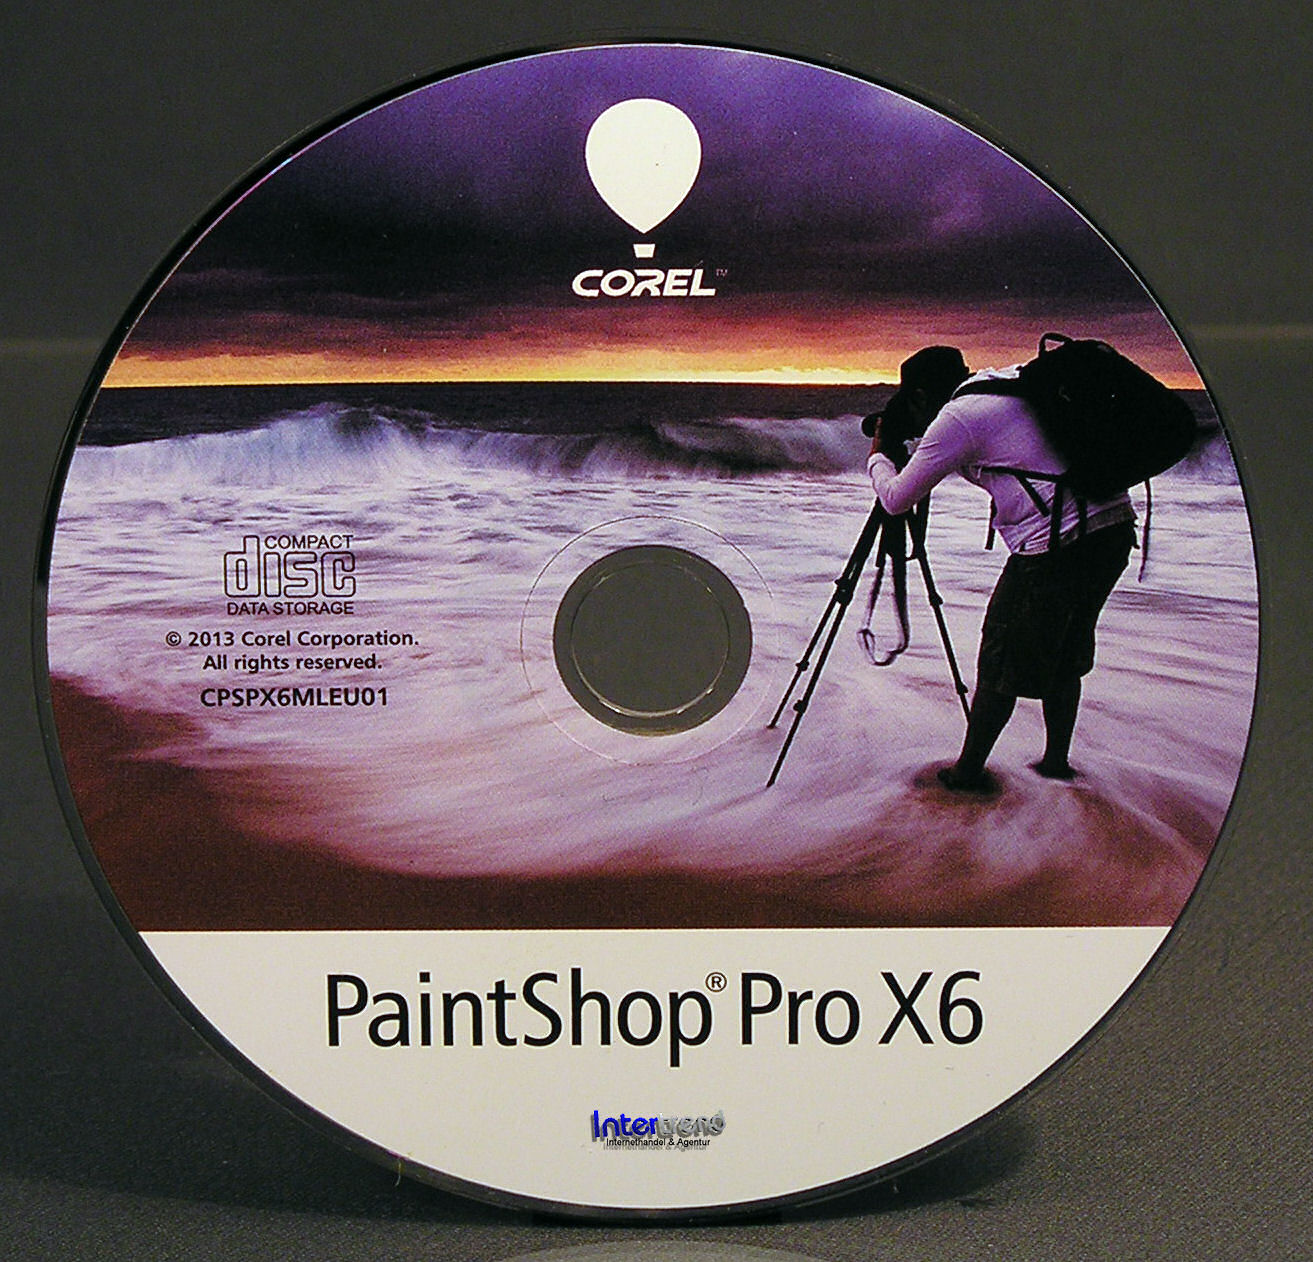 corel paintshop pro x6 ultimate vollversion box cd handbuch pdf ovp neu ebay. Black Bedroom Furniture Sets. Home Design Ideas